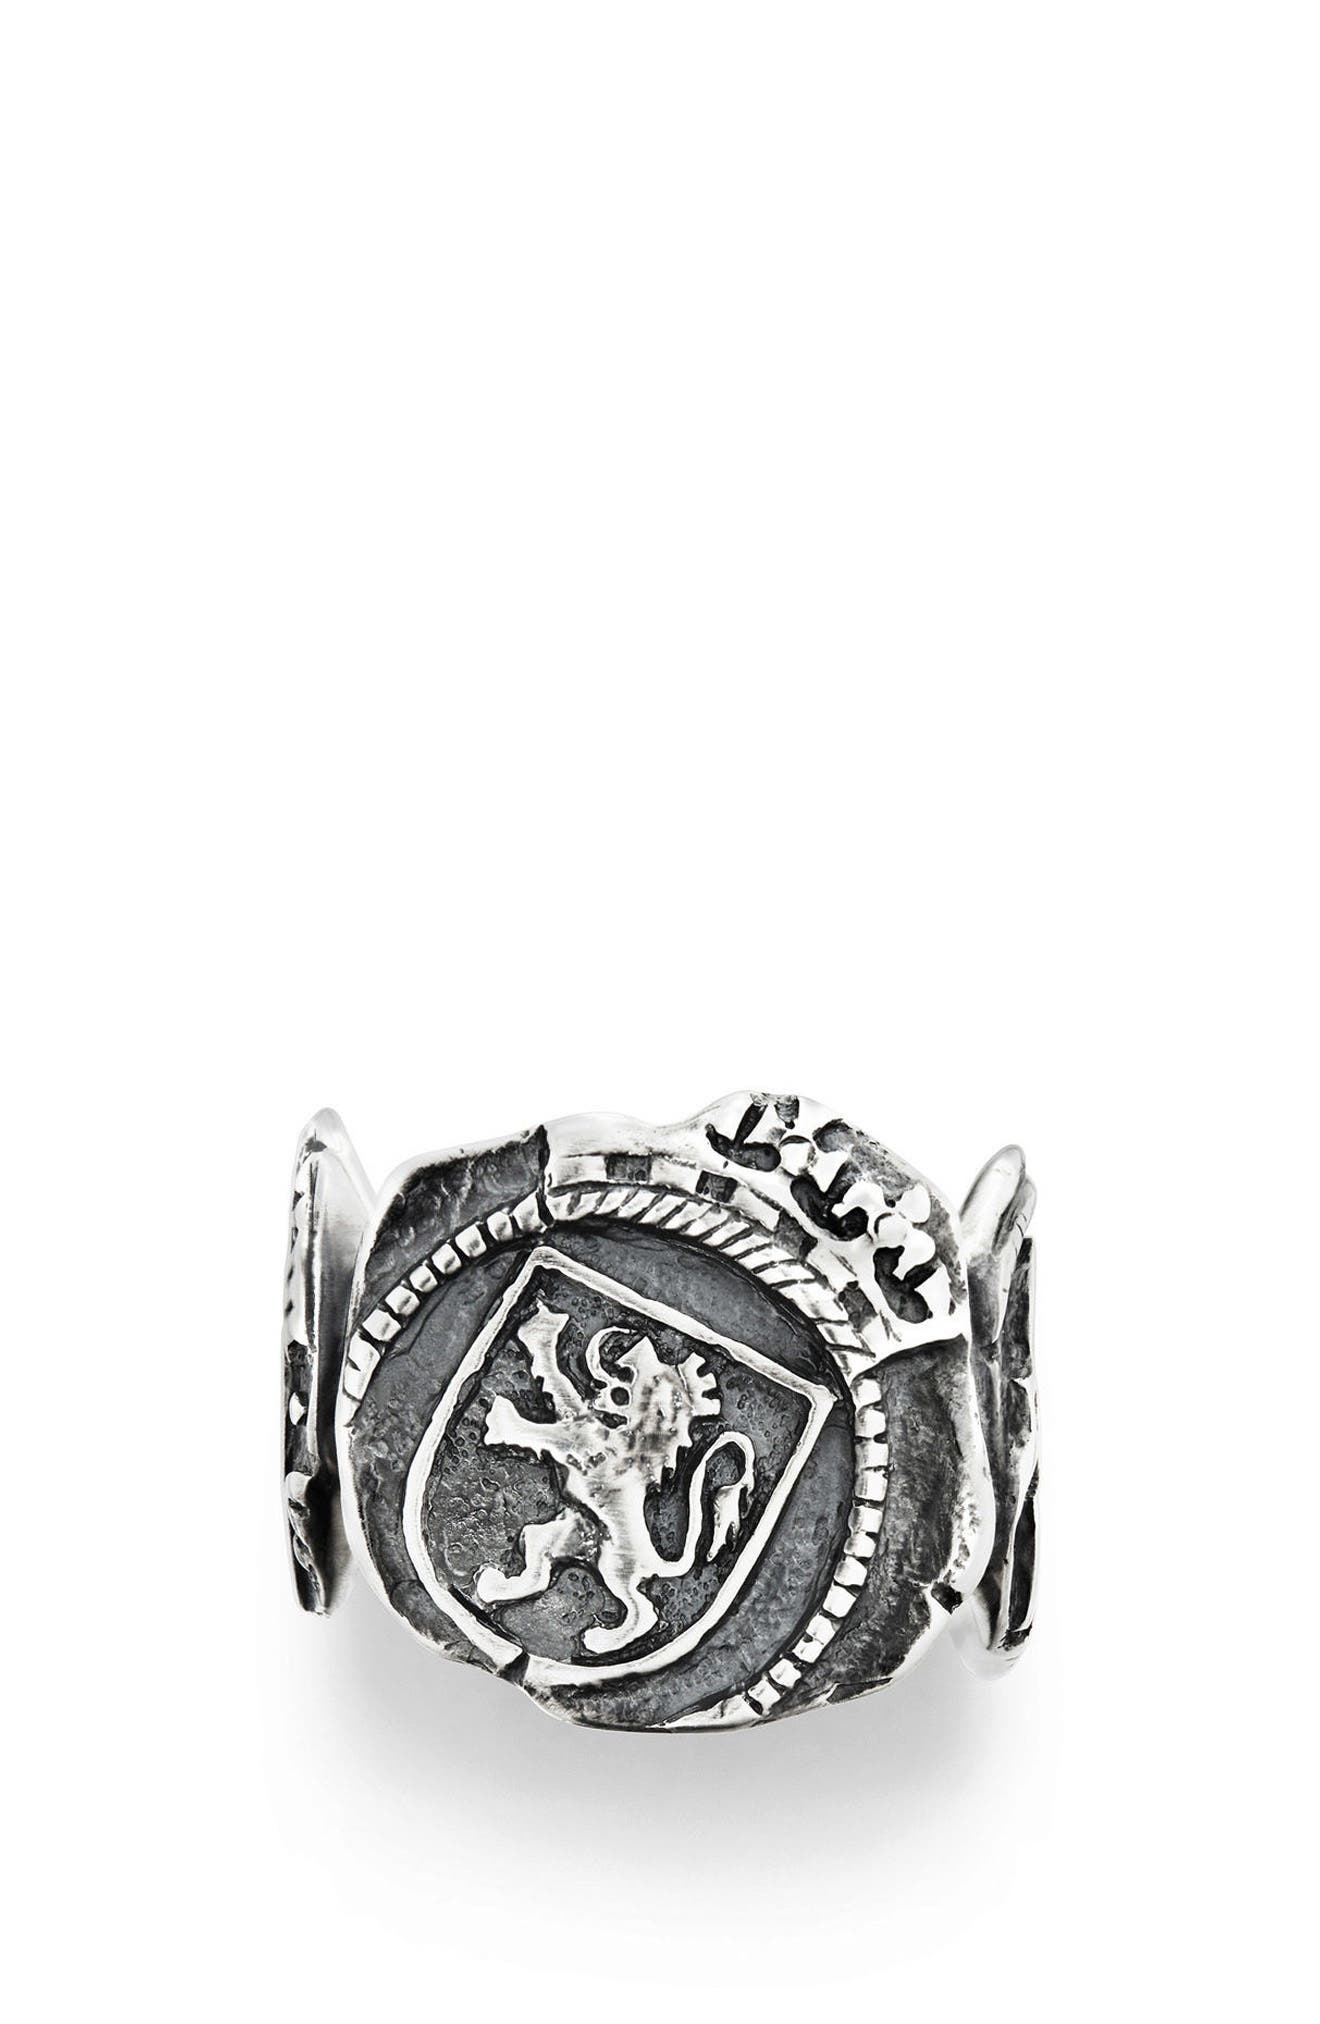 Shipwreck Signet Coin Ring, 20mm,                             Alternate thumbnail 3, color,                             Silver